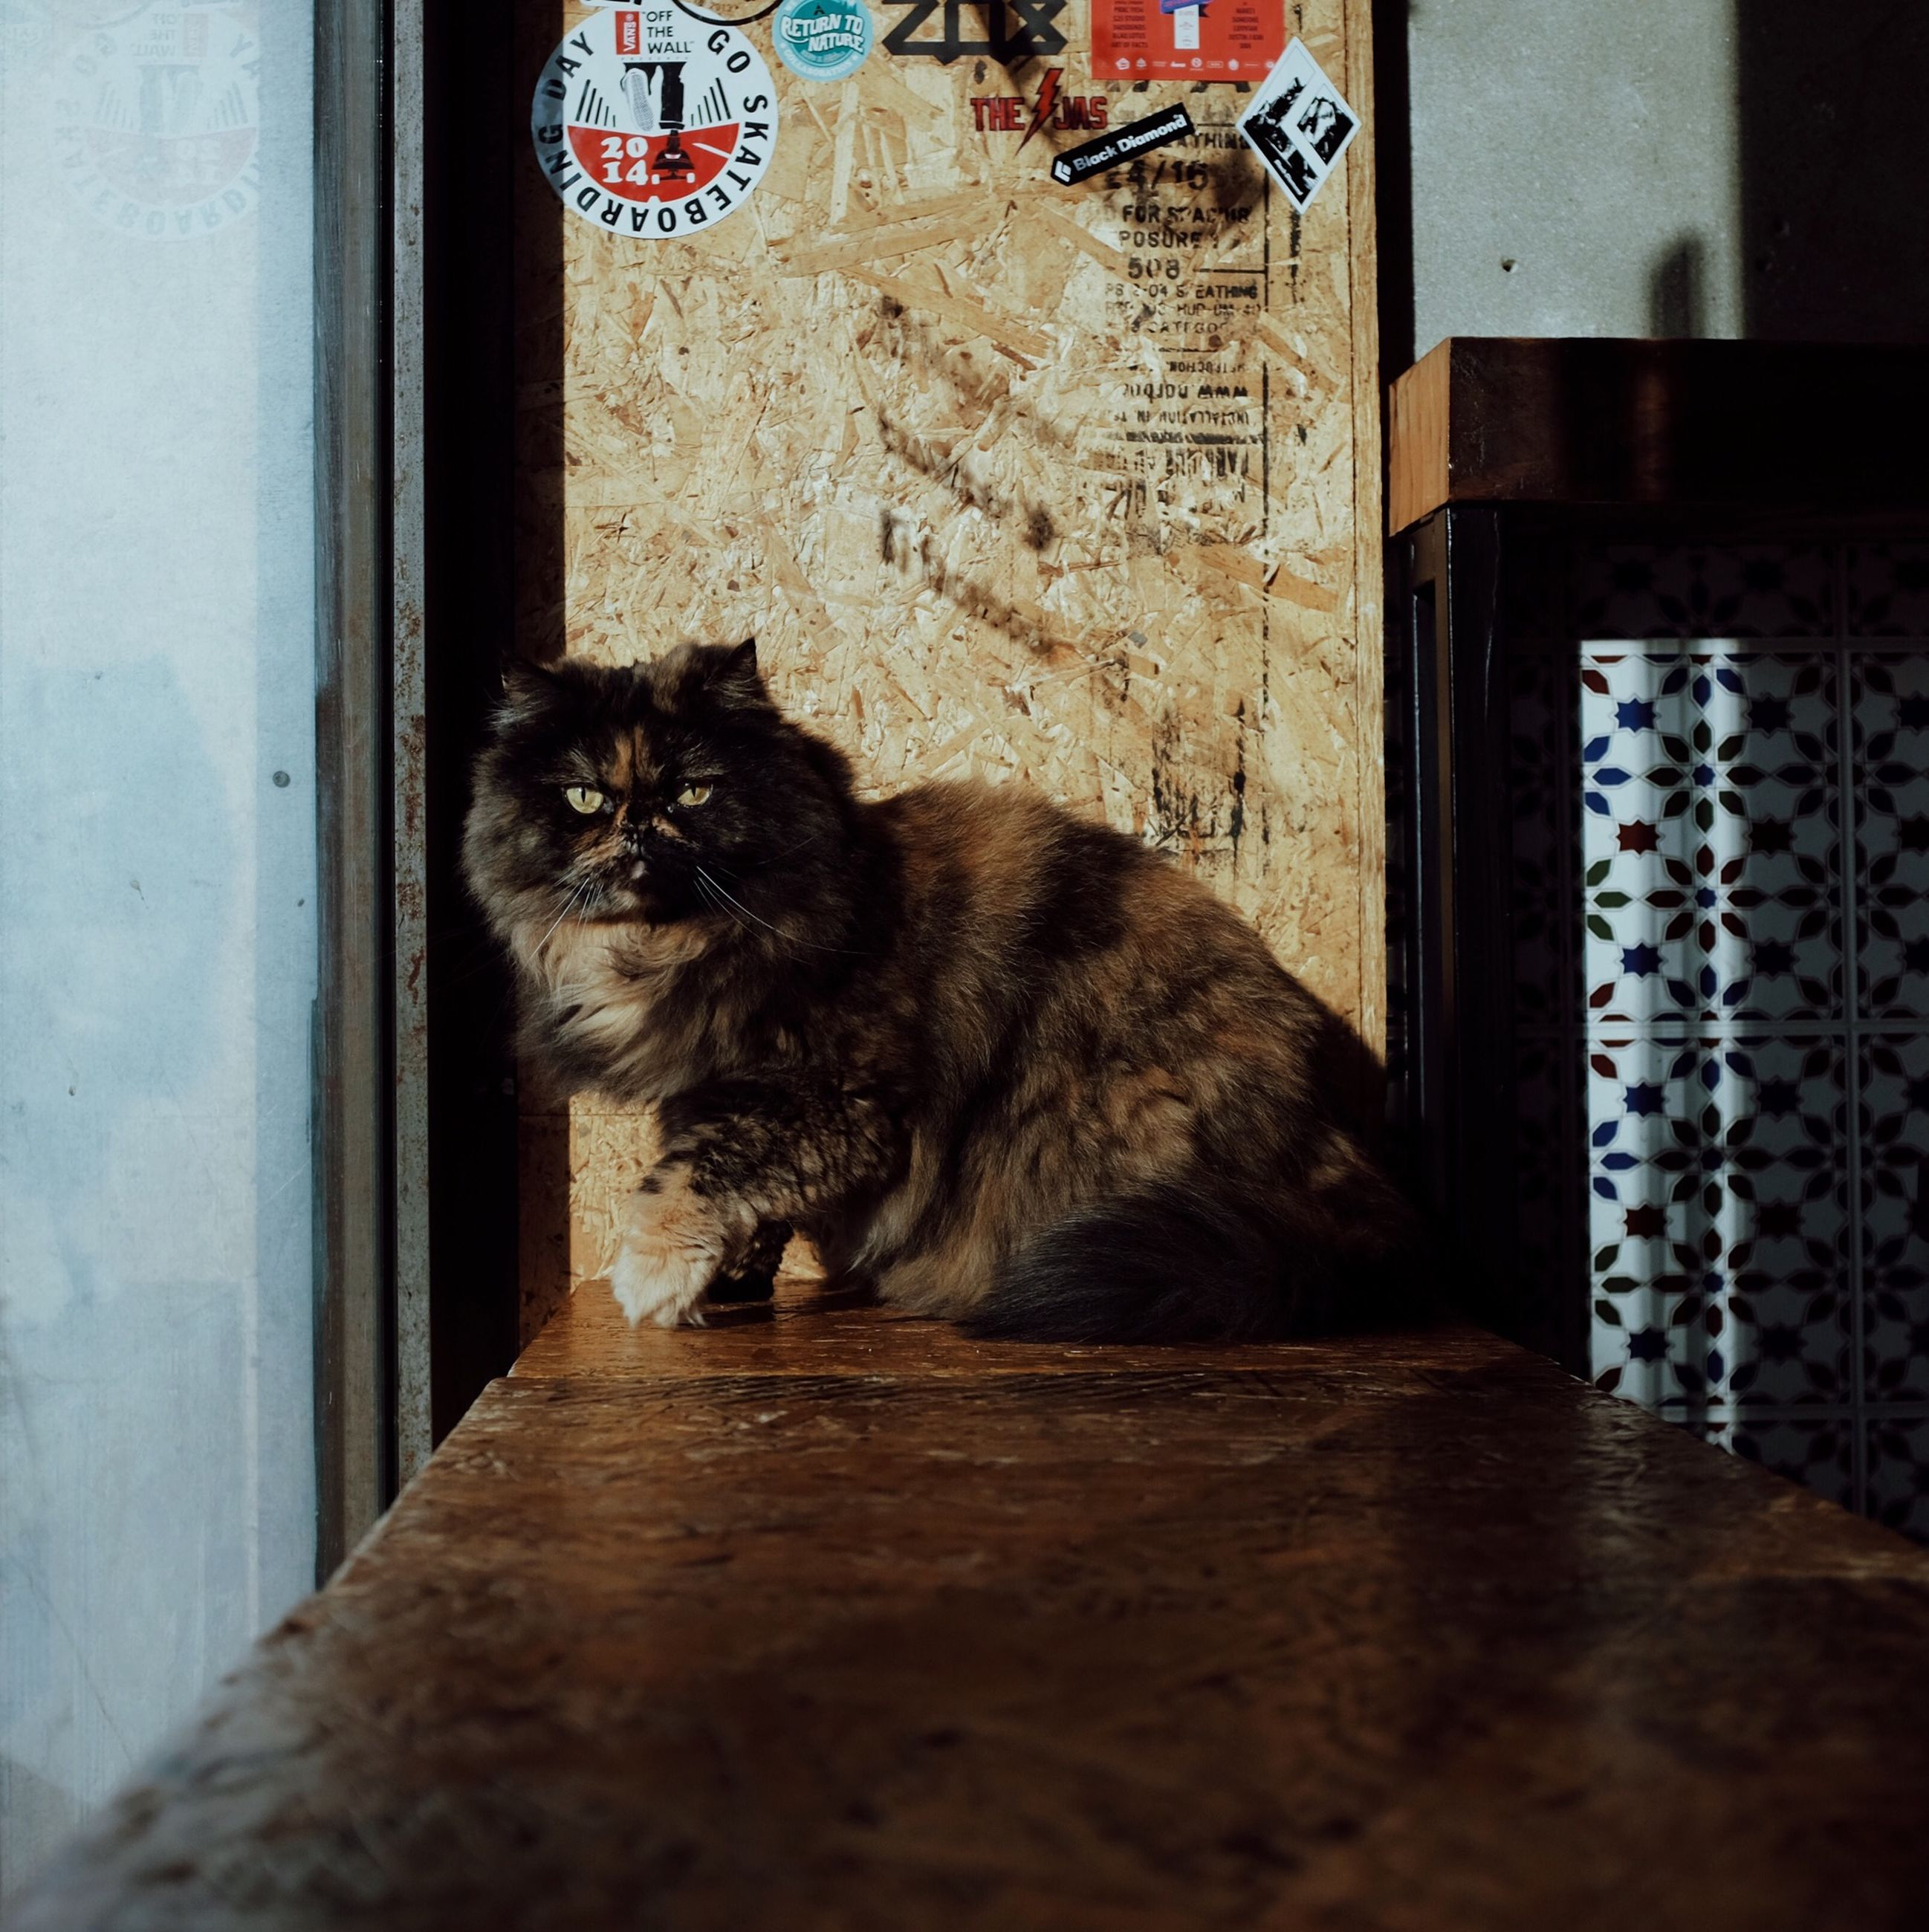 pets, domestic animals, animal themes, one animal, mammal, domestic cat, cat, feline, indoors, relaxation, sitting, built structure, no people, architecture, house, window, full length, wall - building feature, door, portrait